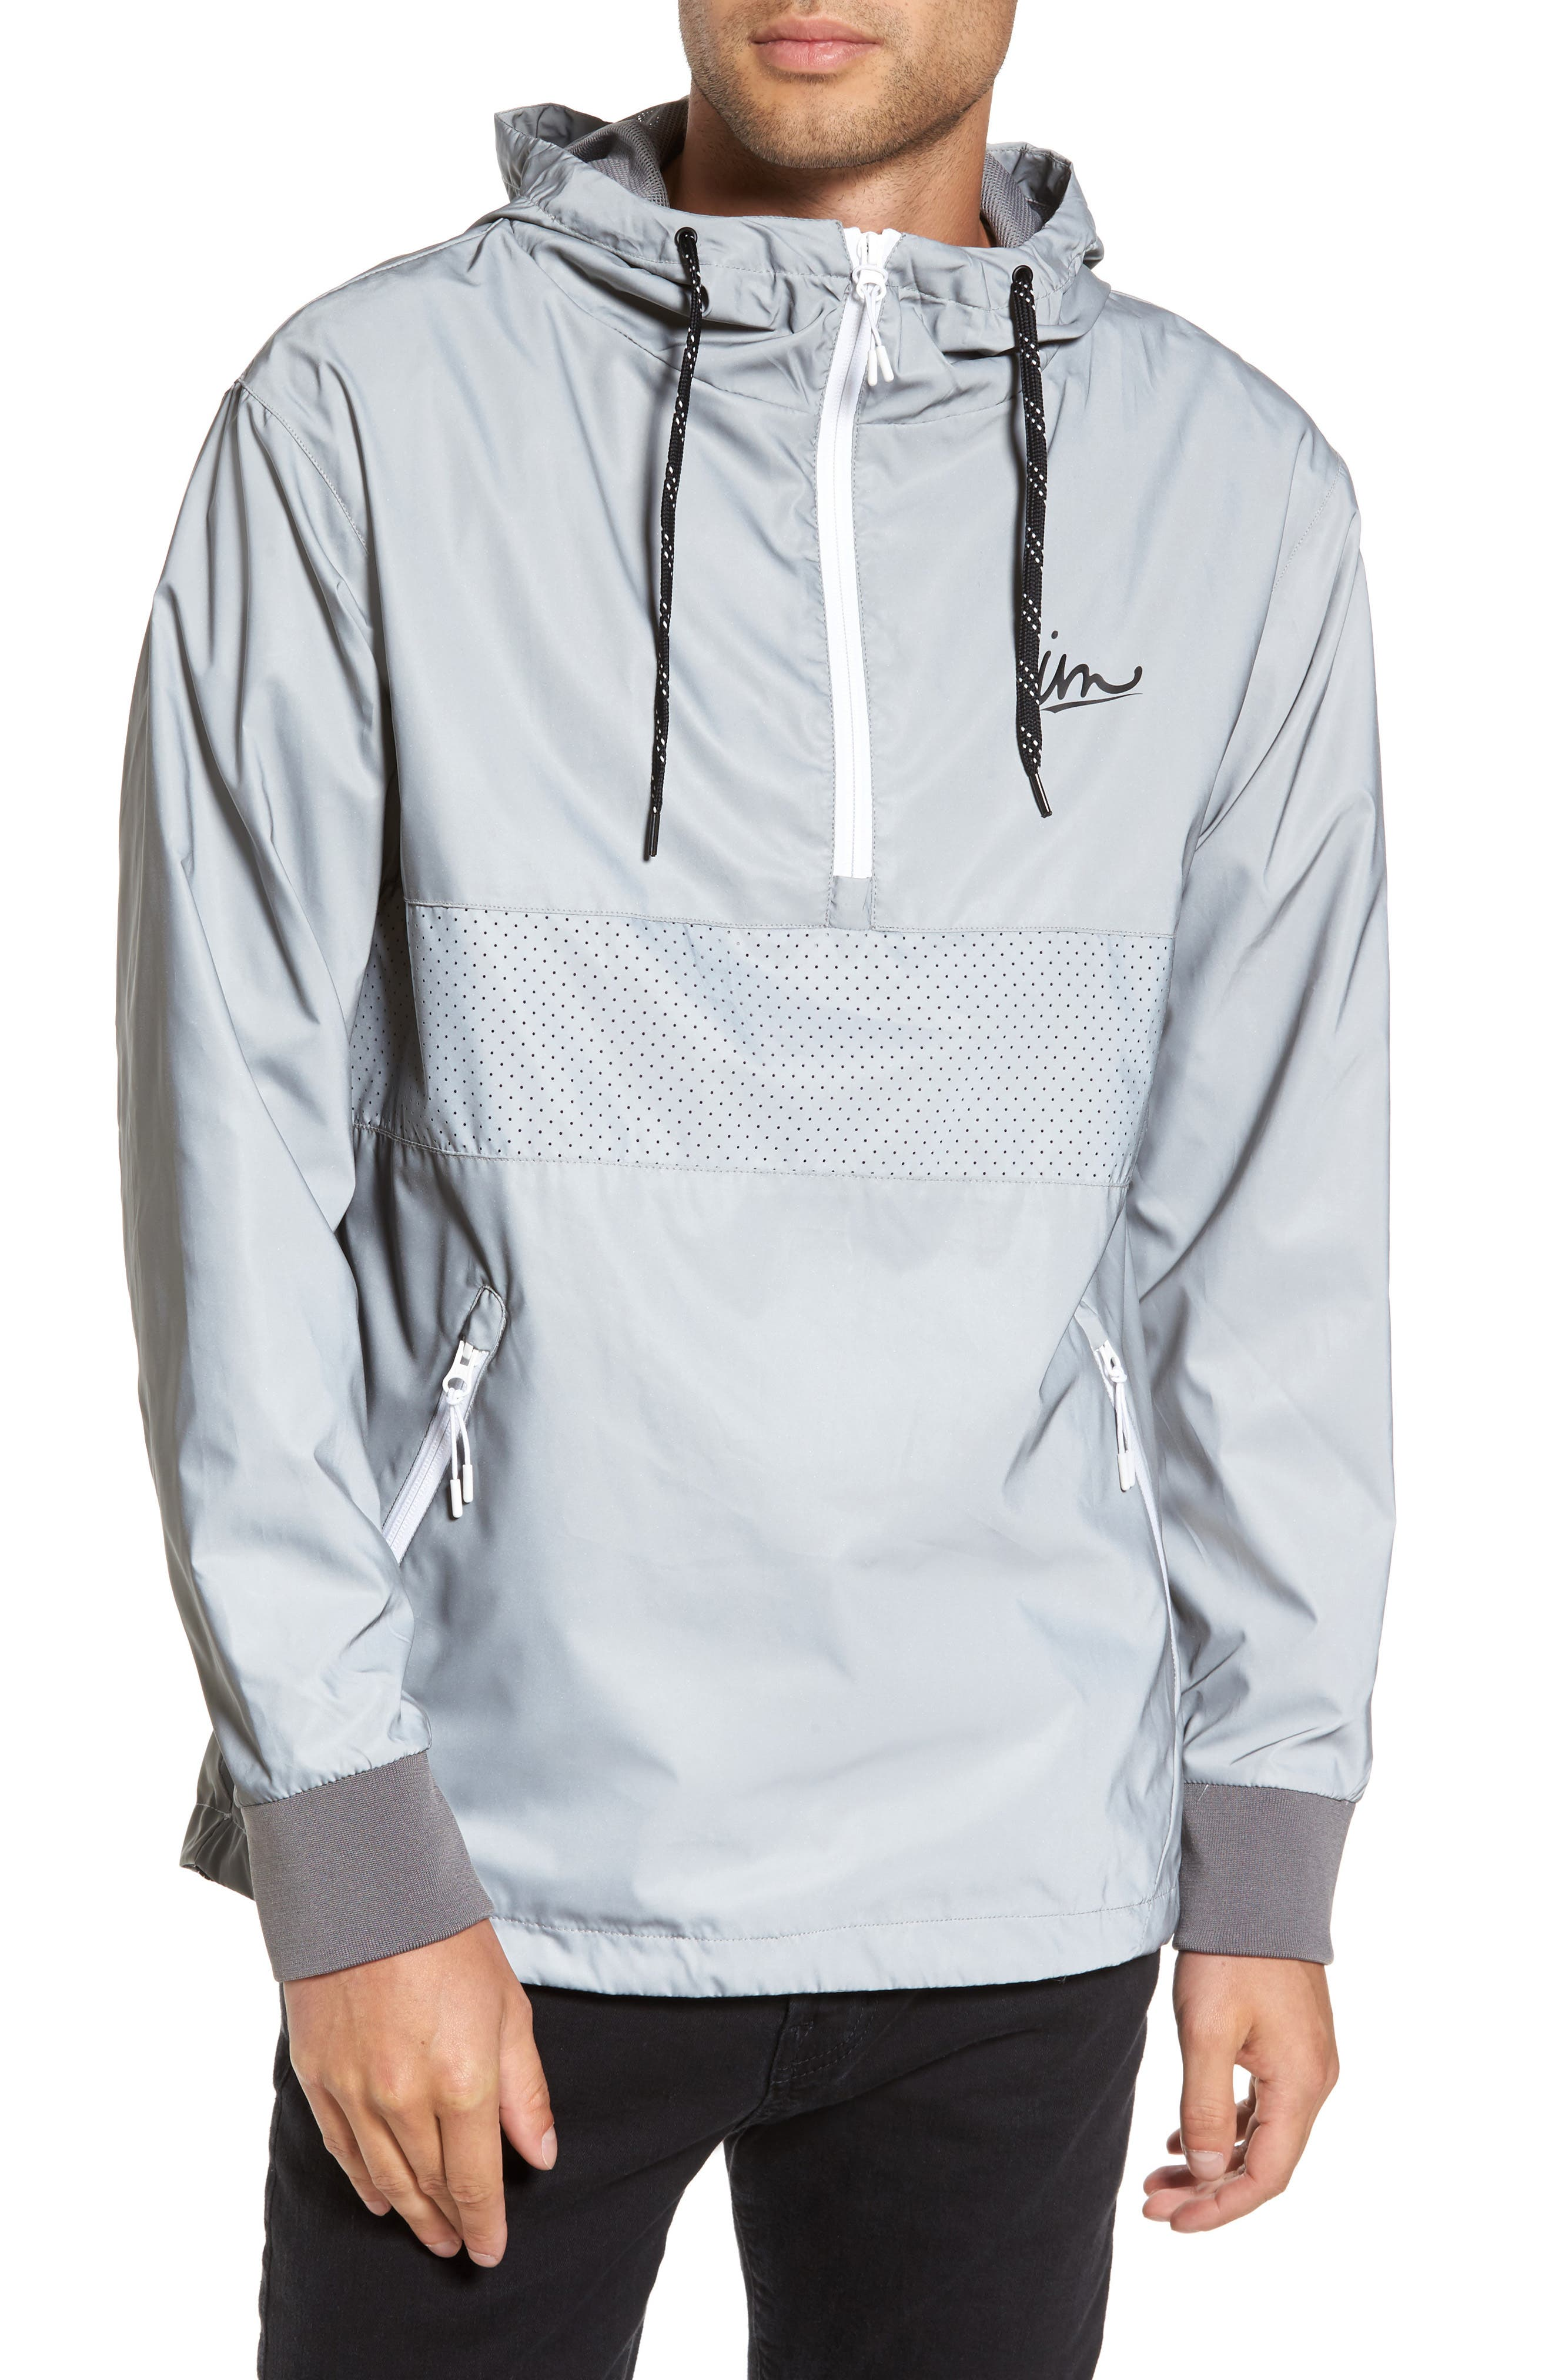 Helix Reflective Anorak,                         Main,                         color, Reflective Silver